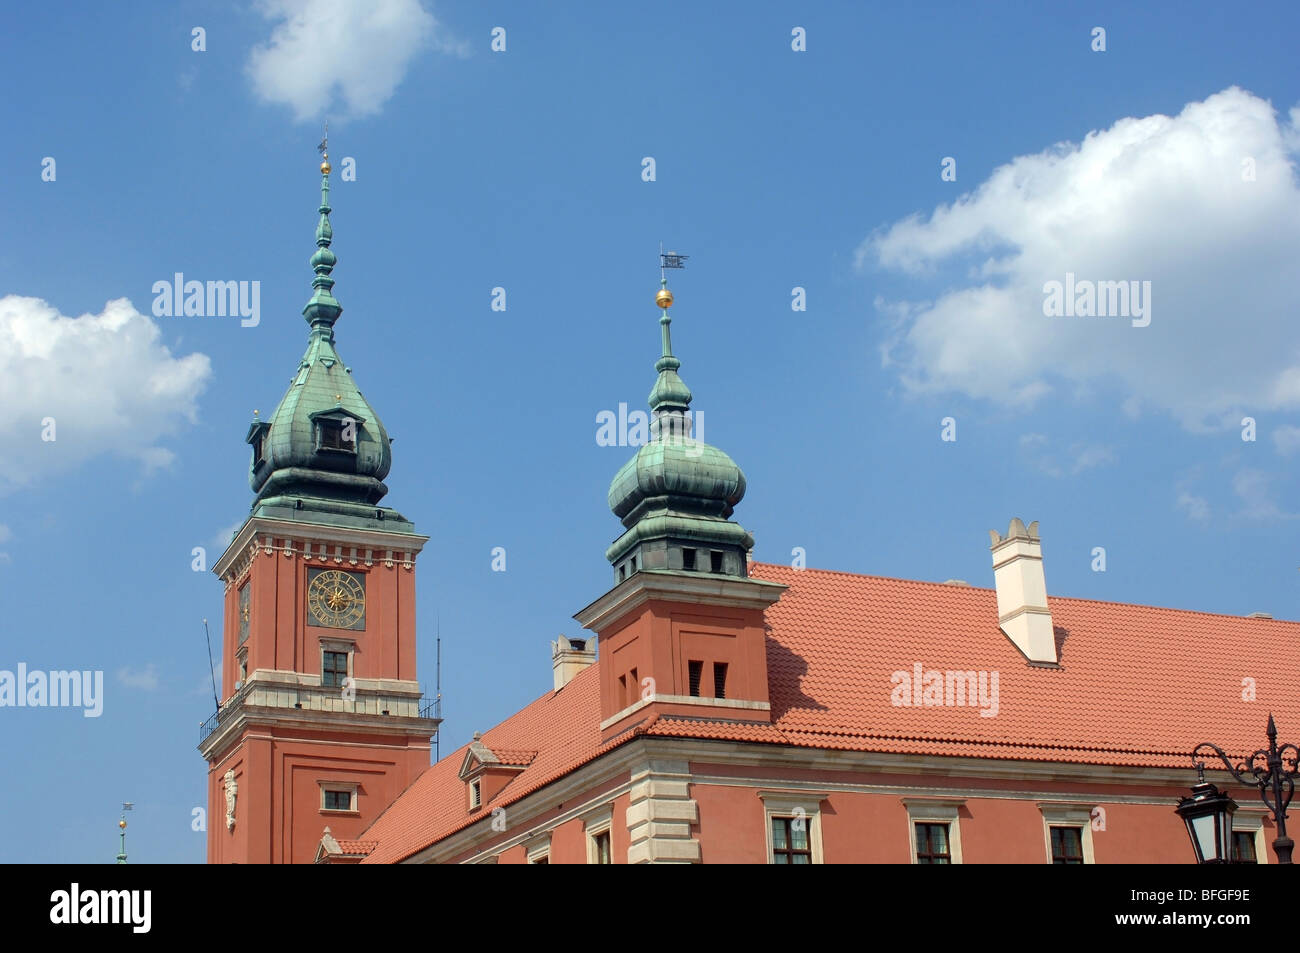 Upward view of the Royal Castle in Warsaw, Poland showing the architectural detail and a pleasant blue sky with Stock Photo